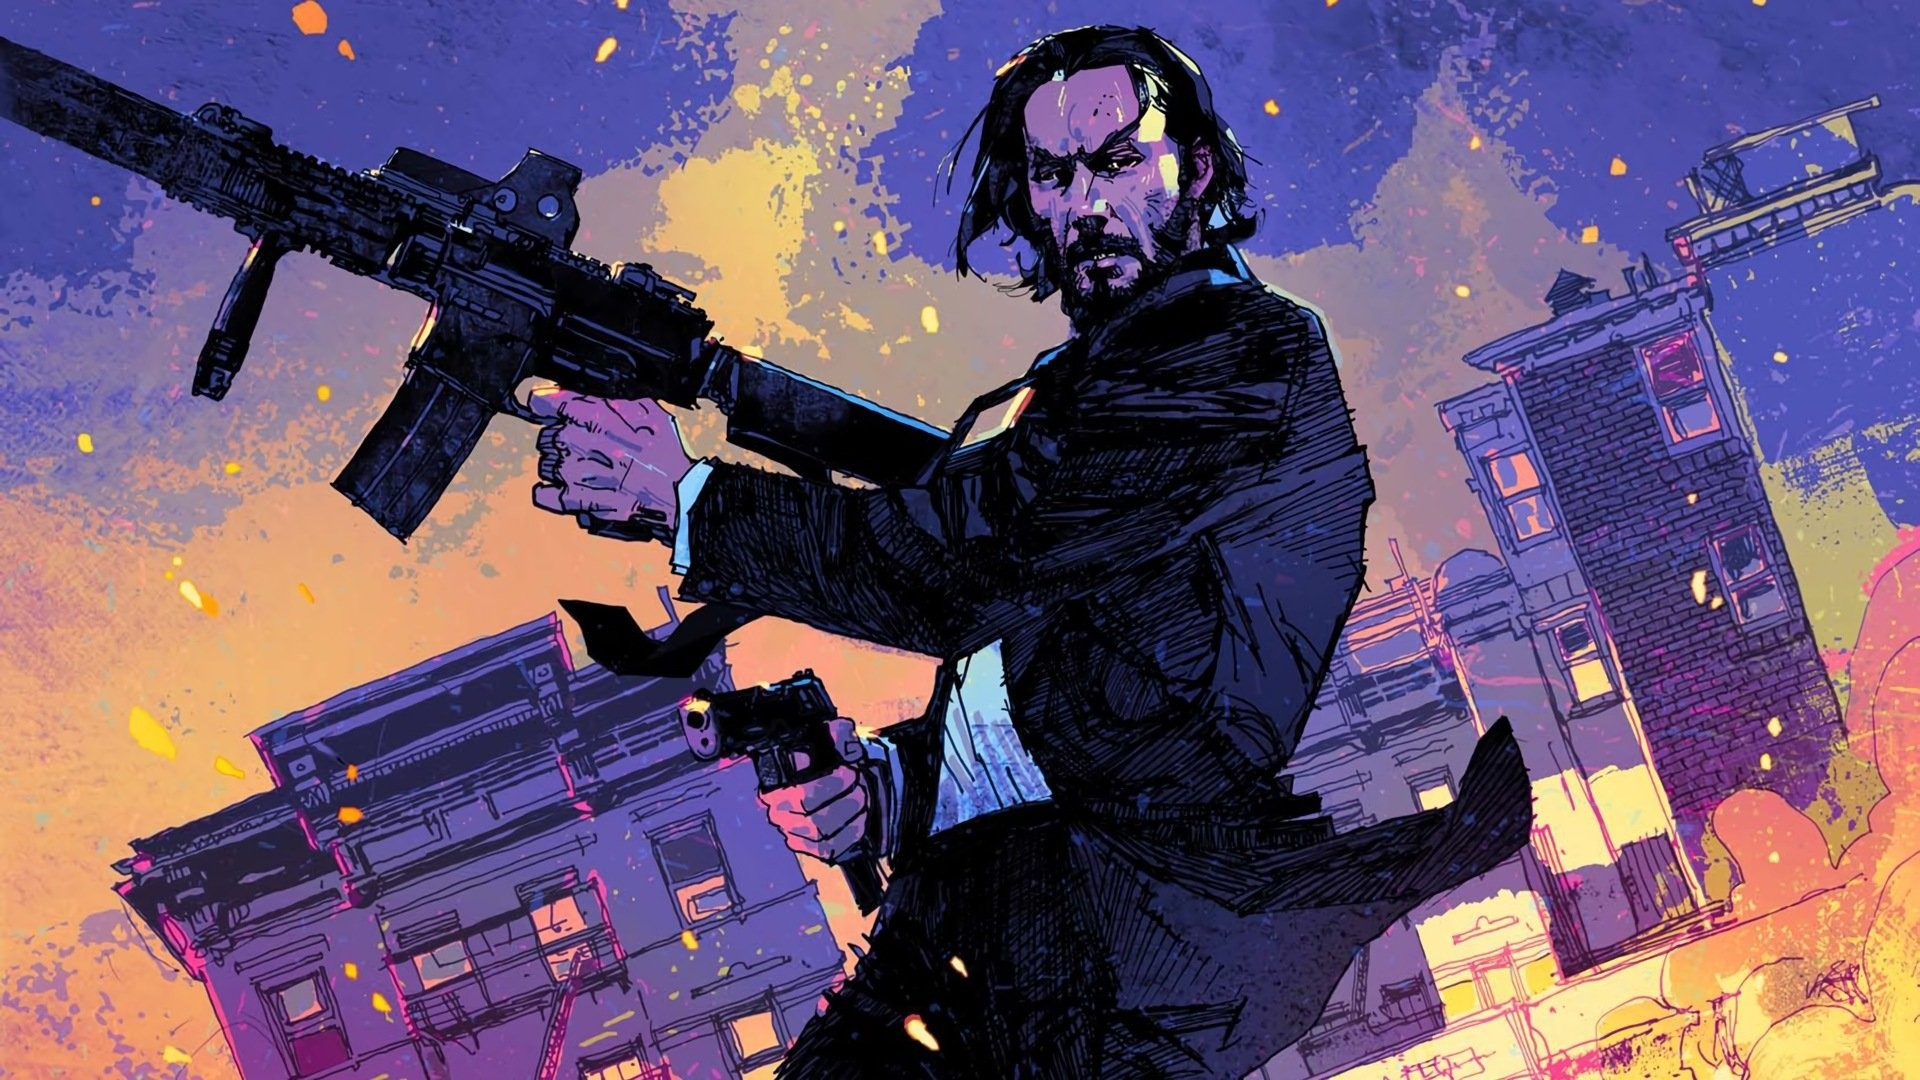 John Wick Fortnite Wallpaper Posted By Samantha Sellers